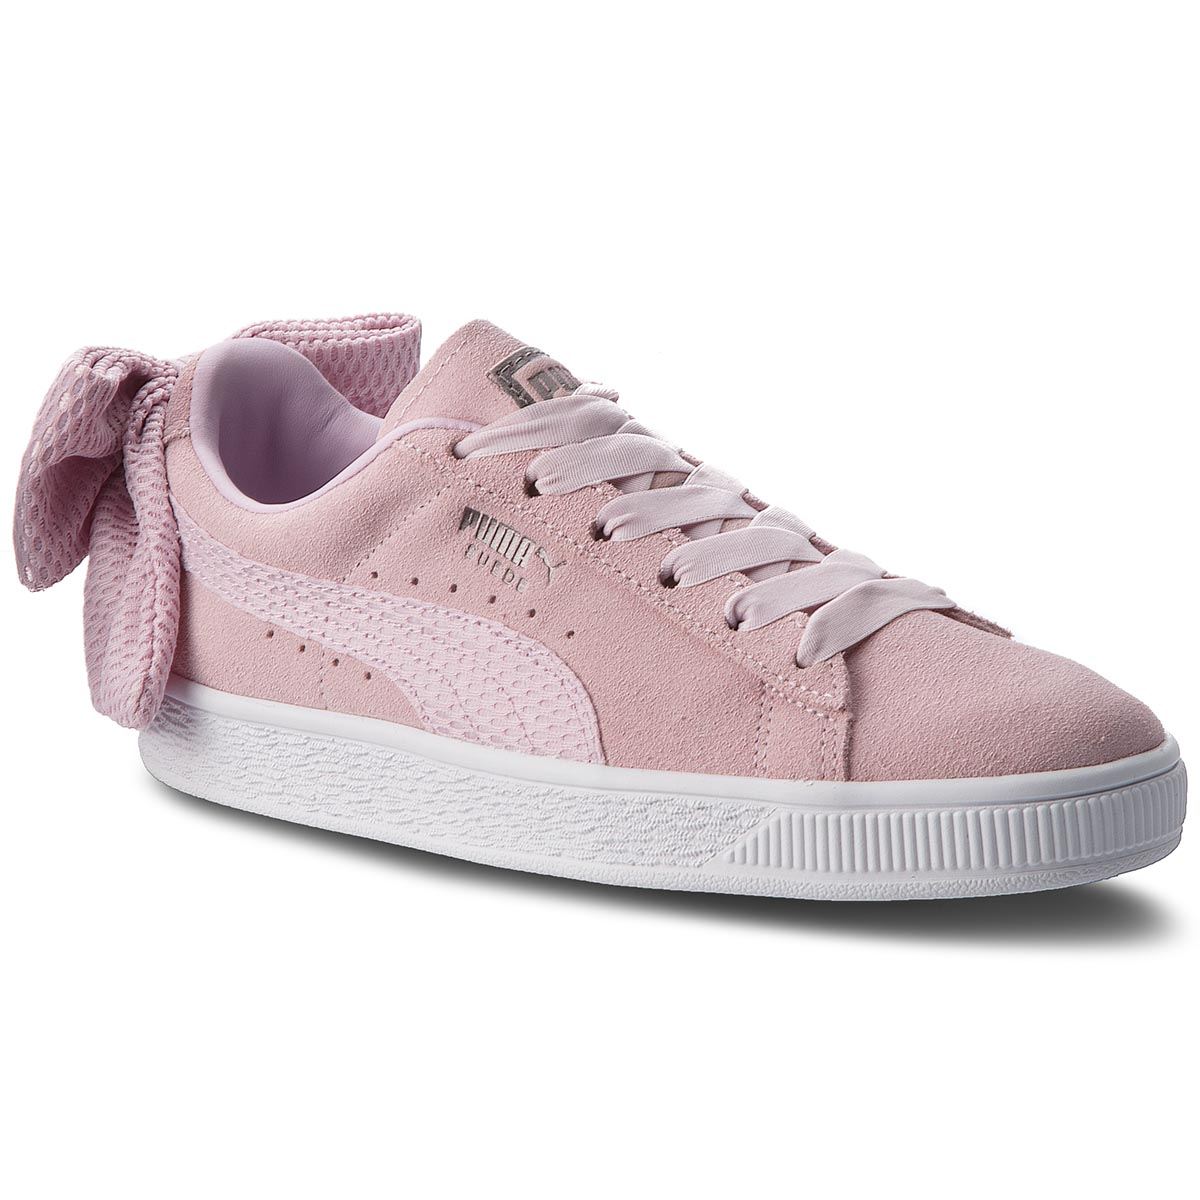 Sneakers PUMA - Suede Bow Uprising Wn's 367455 03 Winsome Orchid/Puma White